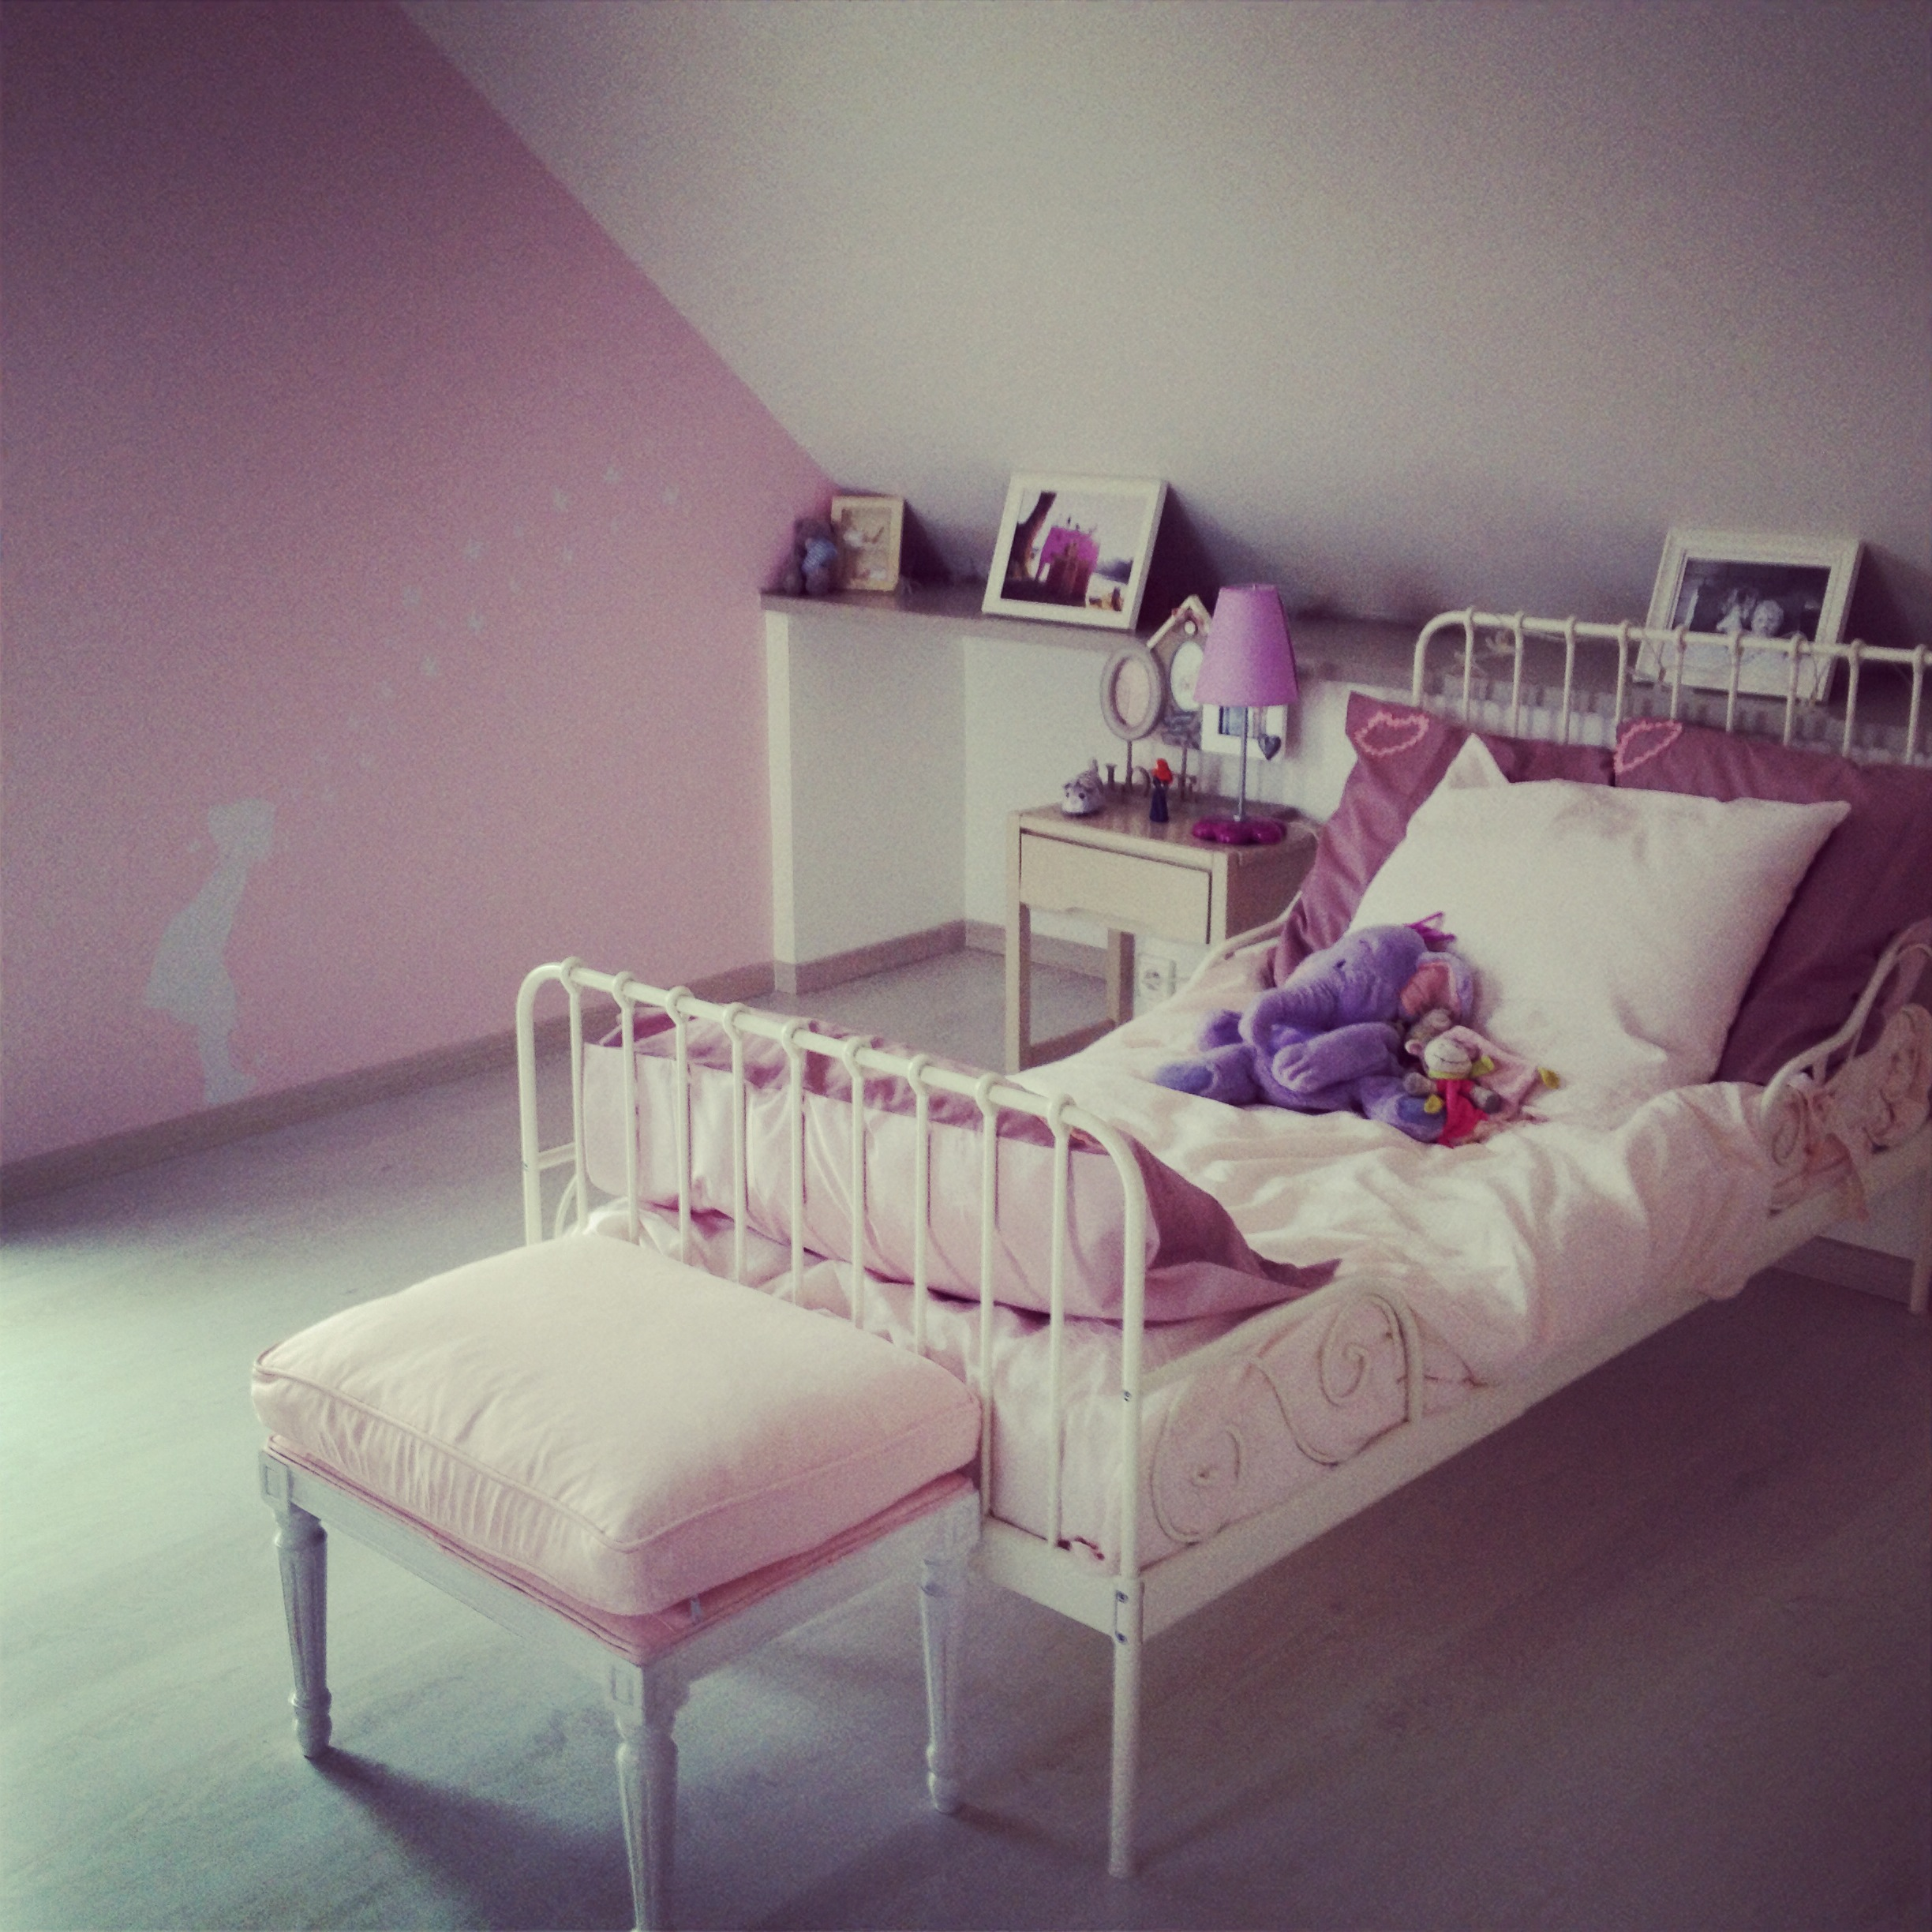 une bien jolie chambre le blog des editeurs de jolies choses pour enfants. Black Bedroom Furniture Sets. Home Design Ideas